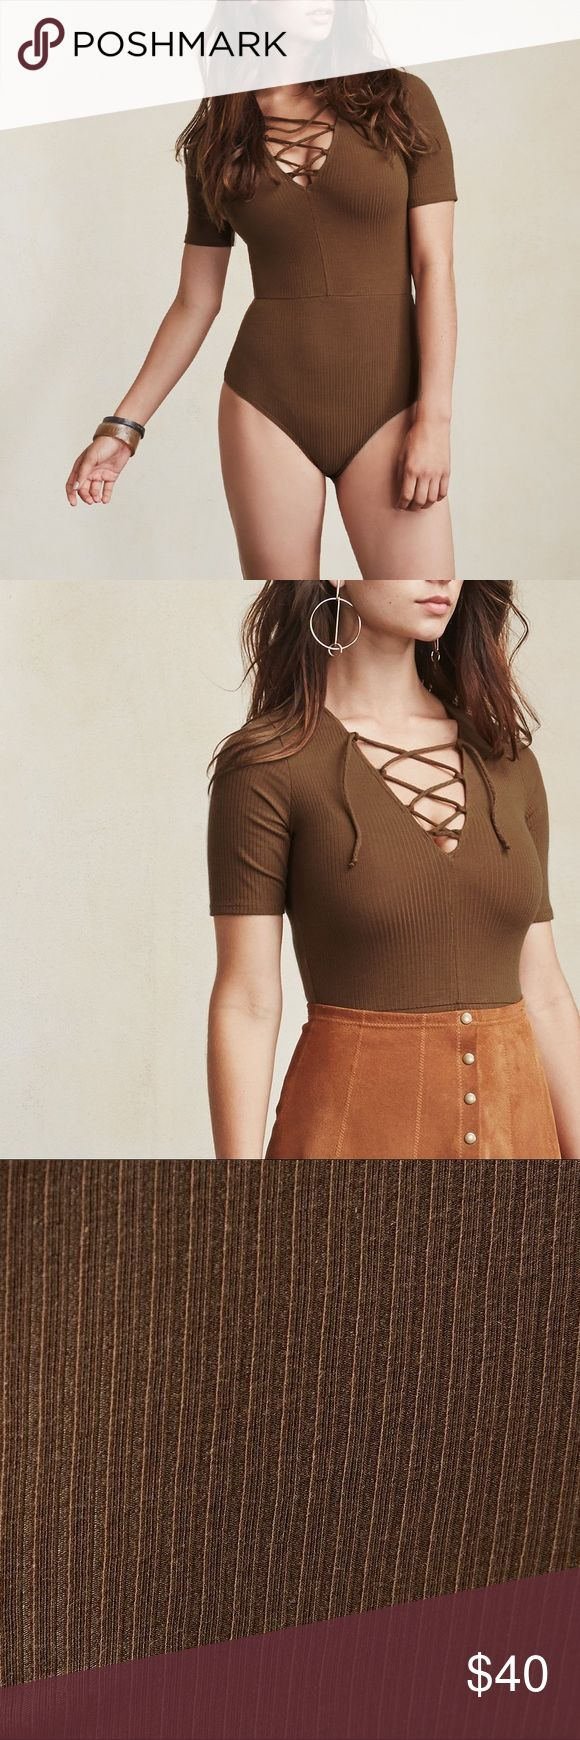 "Reformation ""Serena"" bodysuit size XS Size XS bodysuit from Reformation. Purchased new and worn a few times. You are able to wear a bra with this bodysuit and it is designed by Ref for fuller chested women! Color is a golden brown like first photos Reformation Tops"